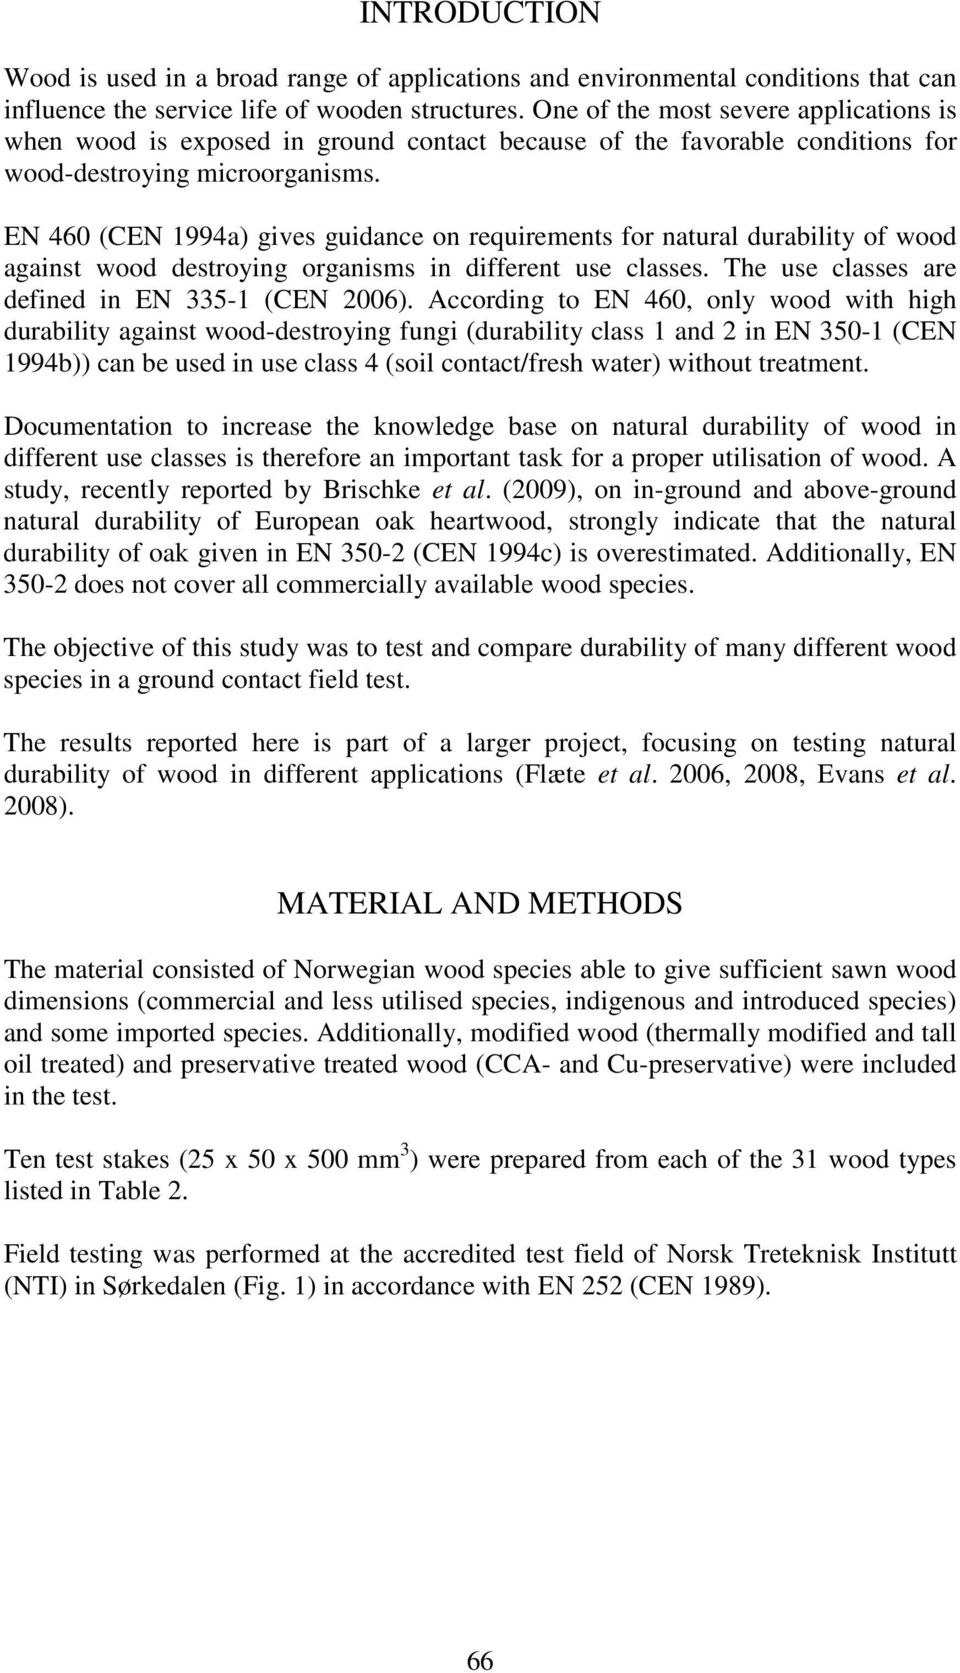 EN 460 (CEN 1994a) gives guidance on requirements for natural durability of wood against wood destroying organisms in different use classes. The use classes are defined in EN 335-1 (CEN 2006).